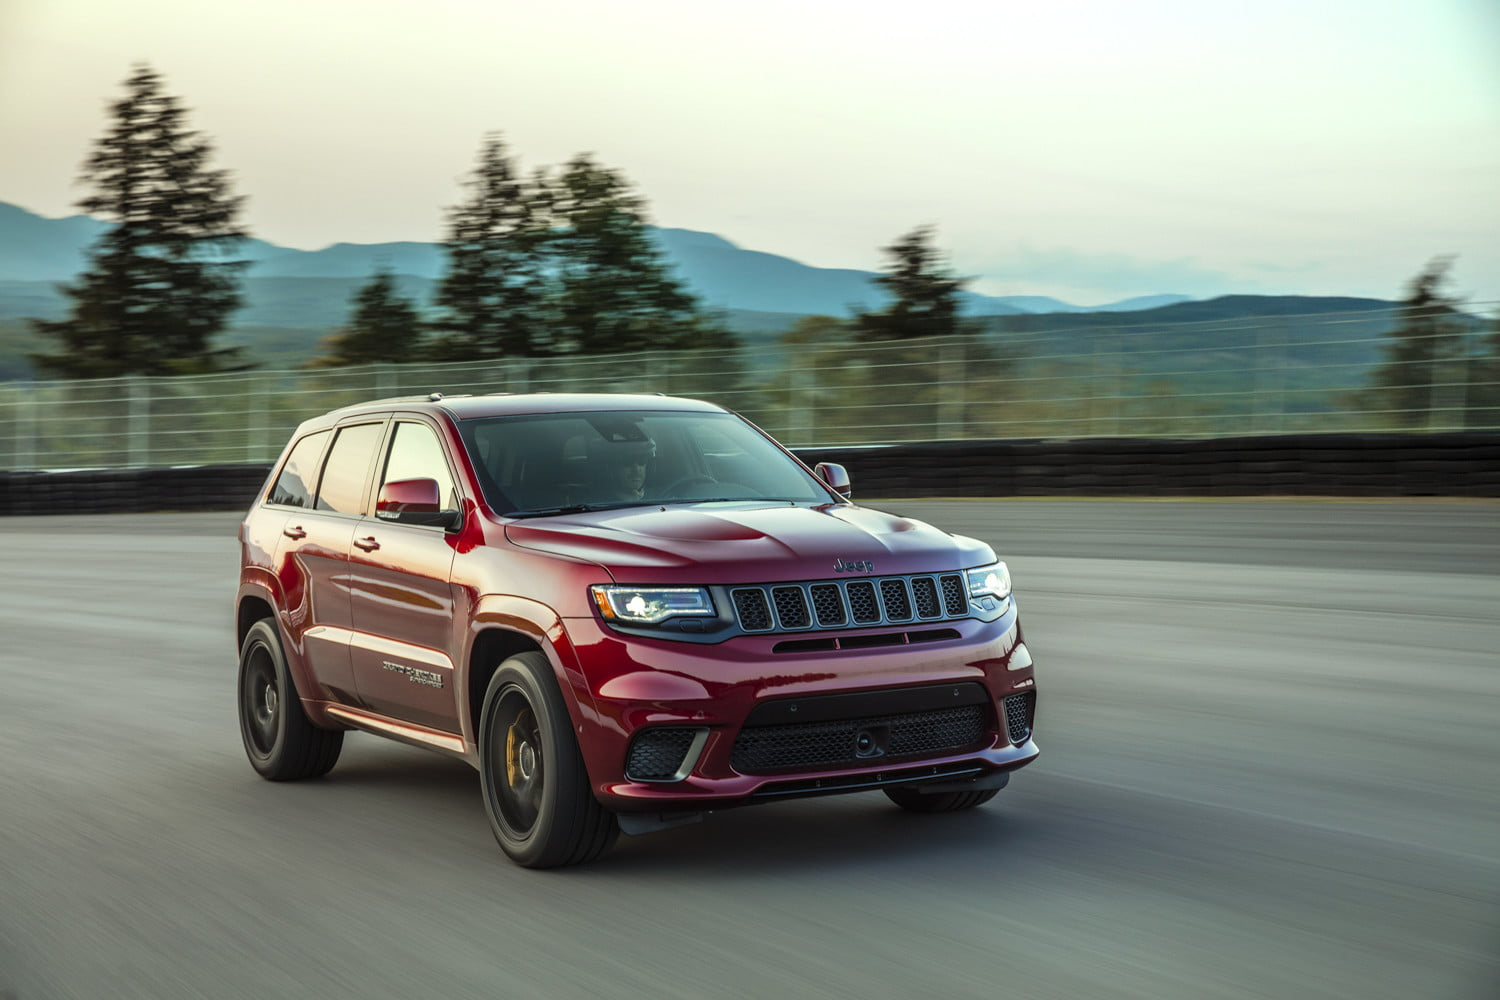 2018 Jeep Grand Cherokee: New Trackhawk Version, Specs, Price >> 2018 Jeep Grand Cherokee Pictures Specs Release Date Prices